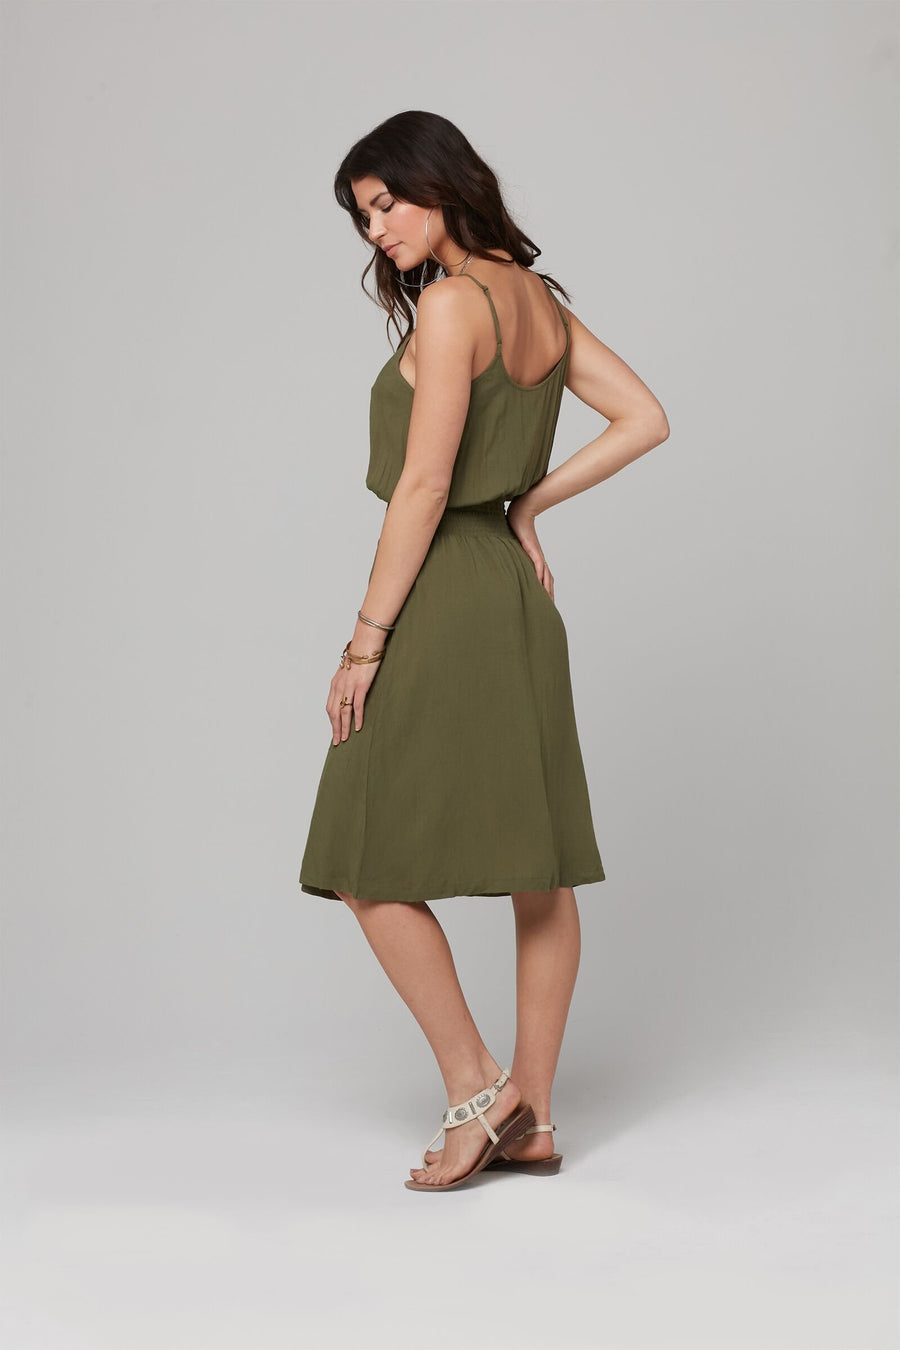 BRYNN DRESS-Military